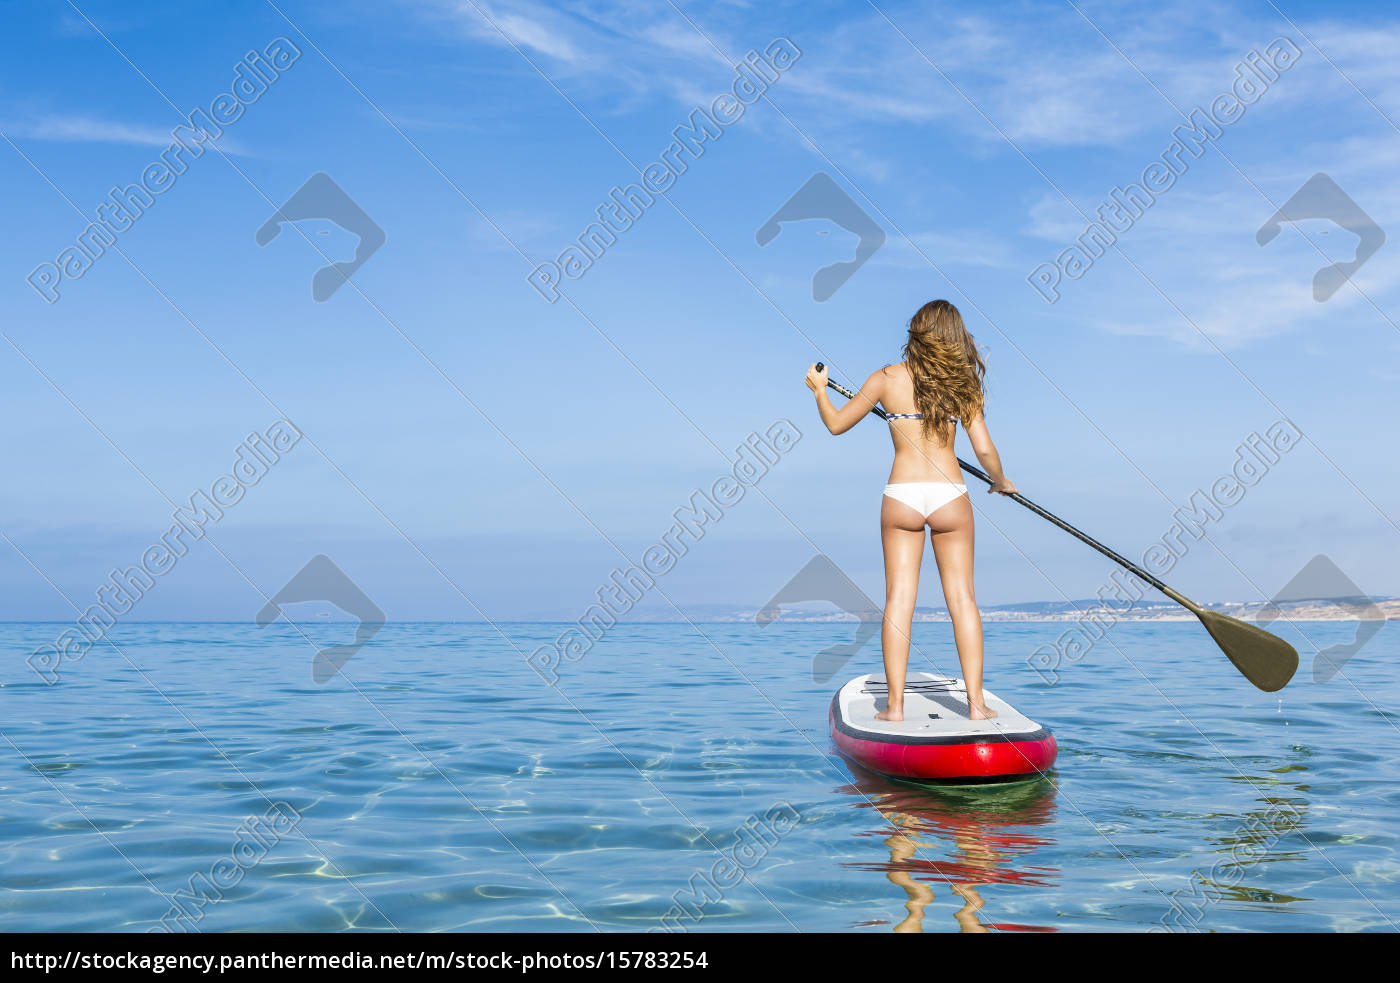 woman, practicing, paddle - 15783254